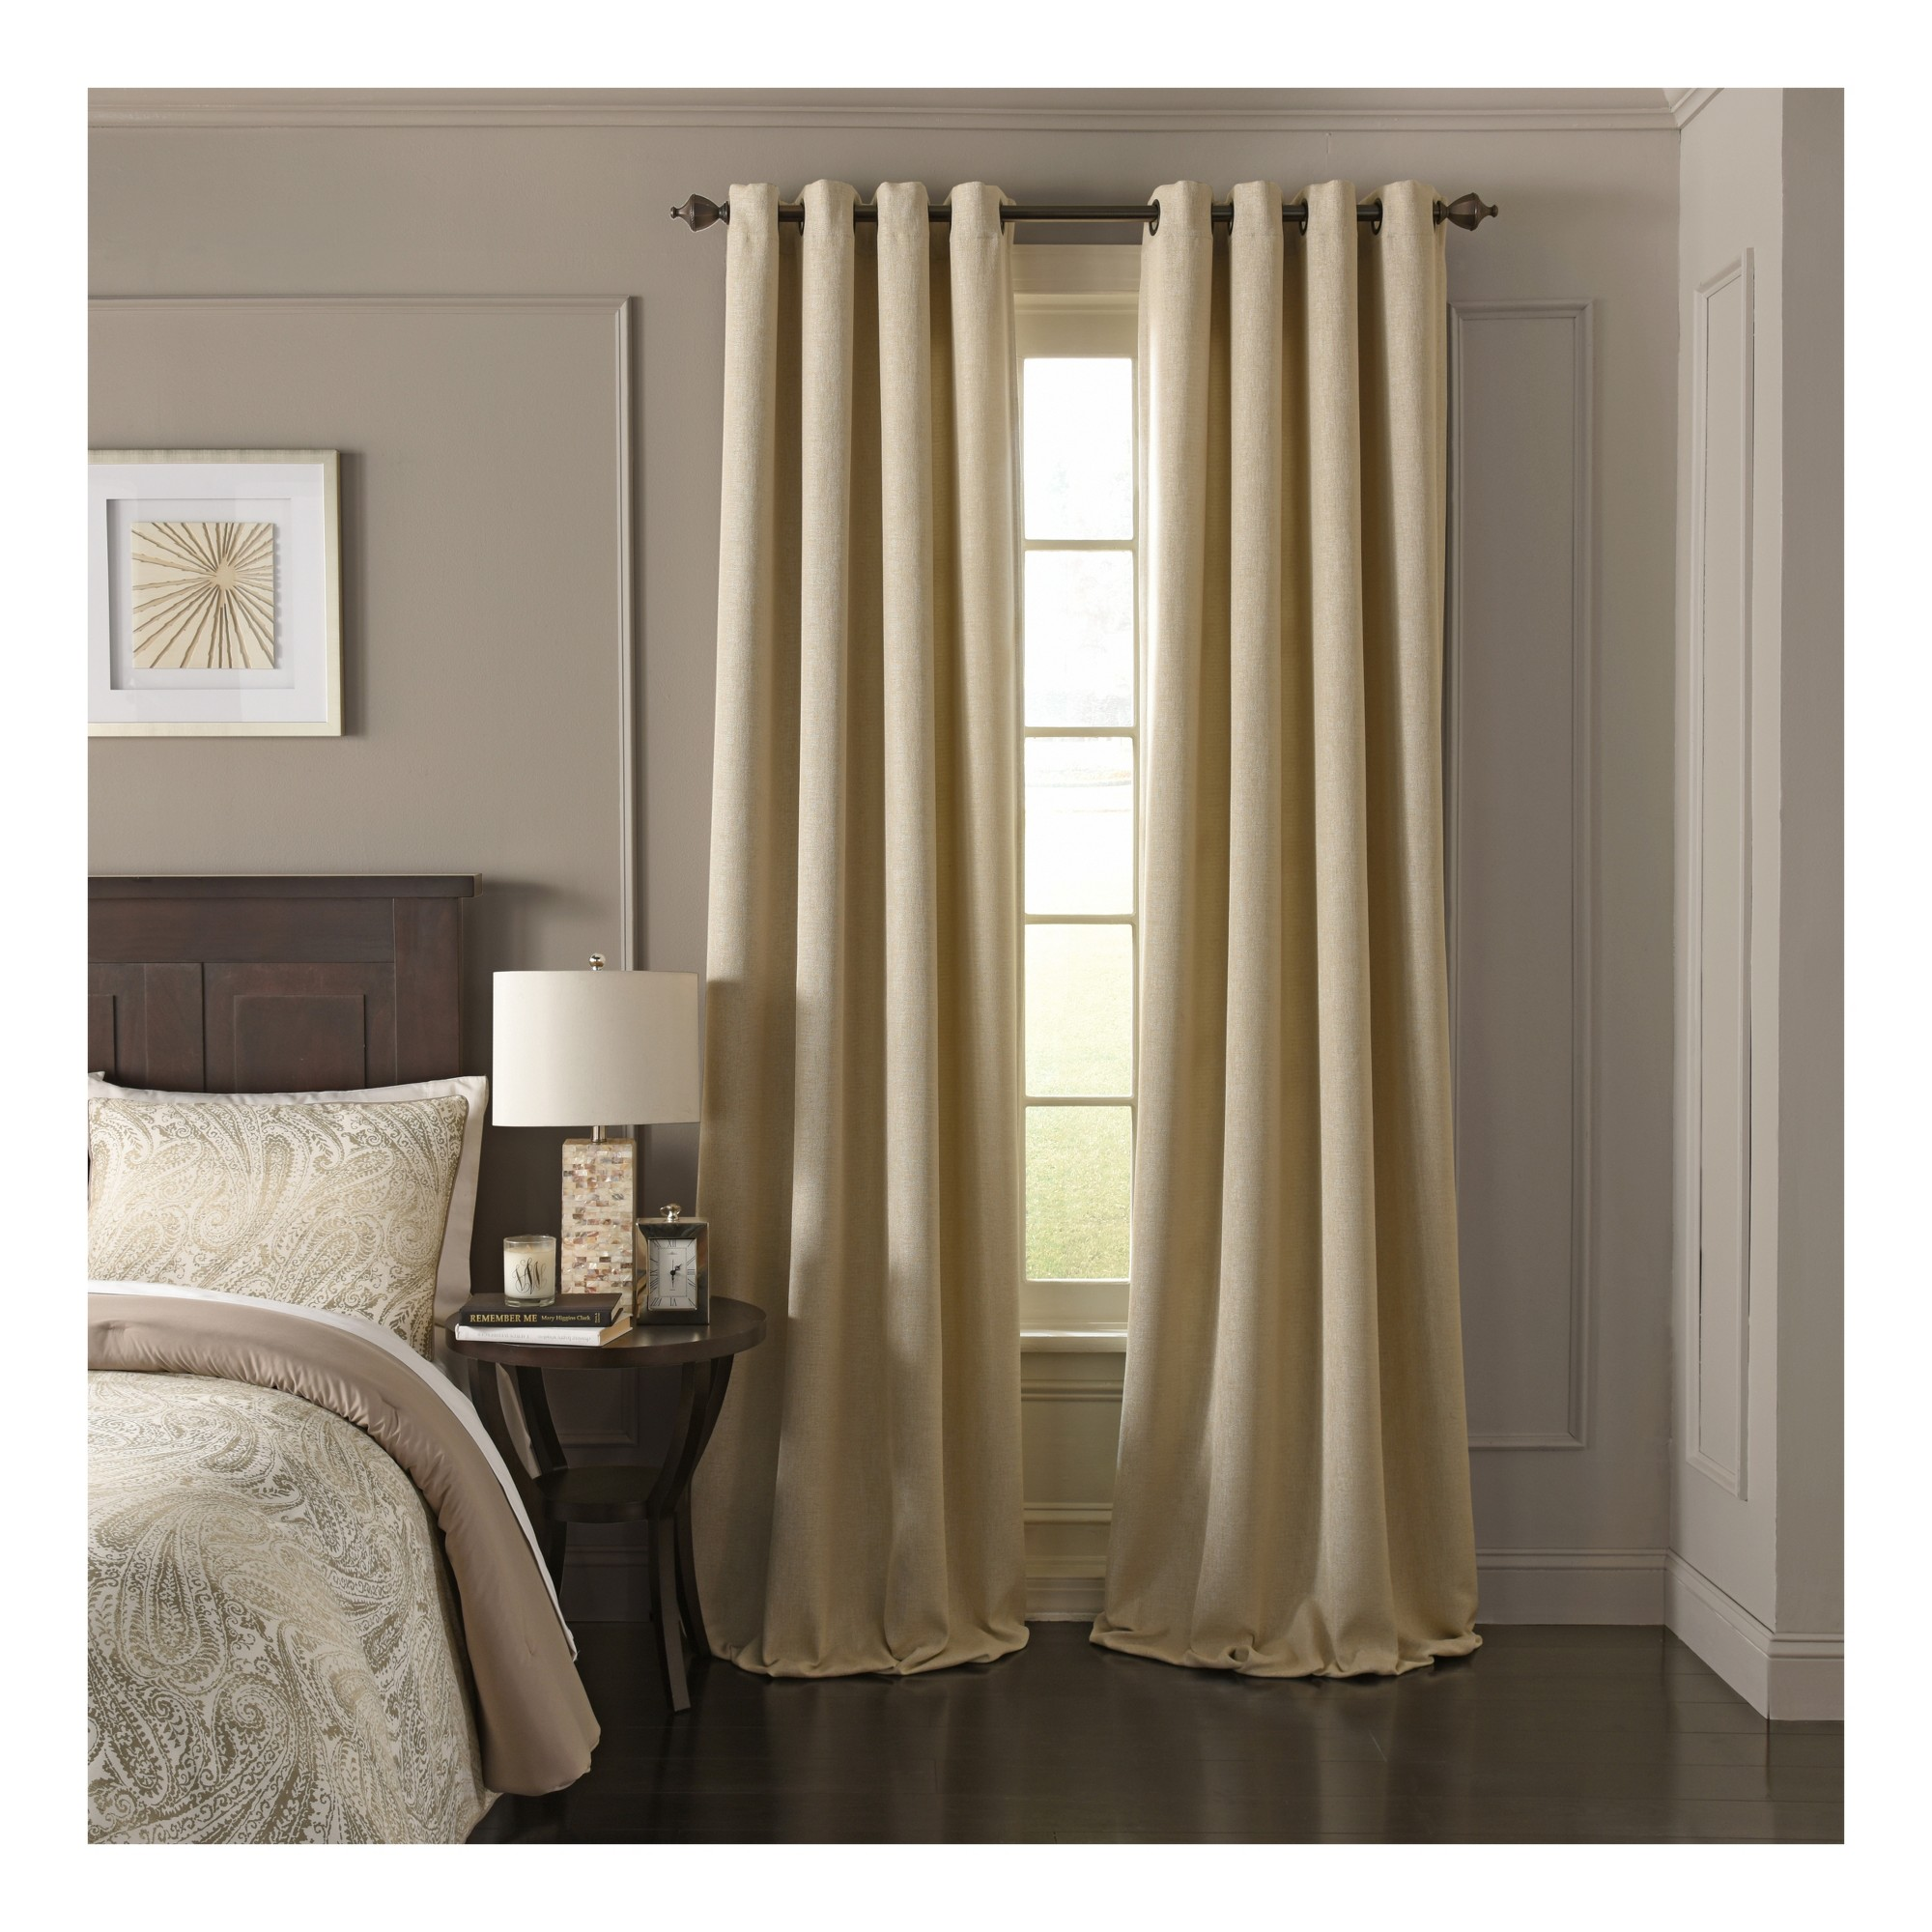 Arlette Blackout Window Curtain Creme Brulee Solid 52x108